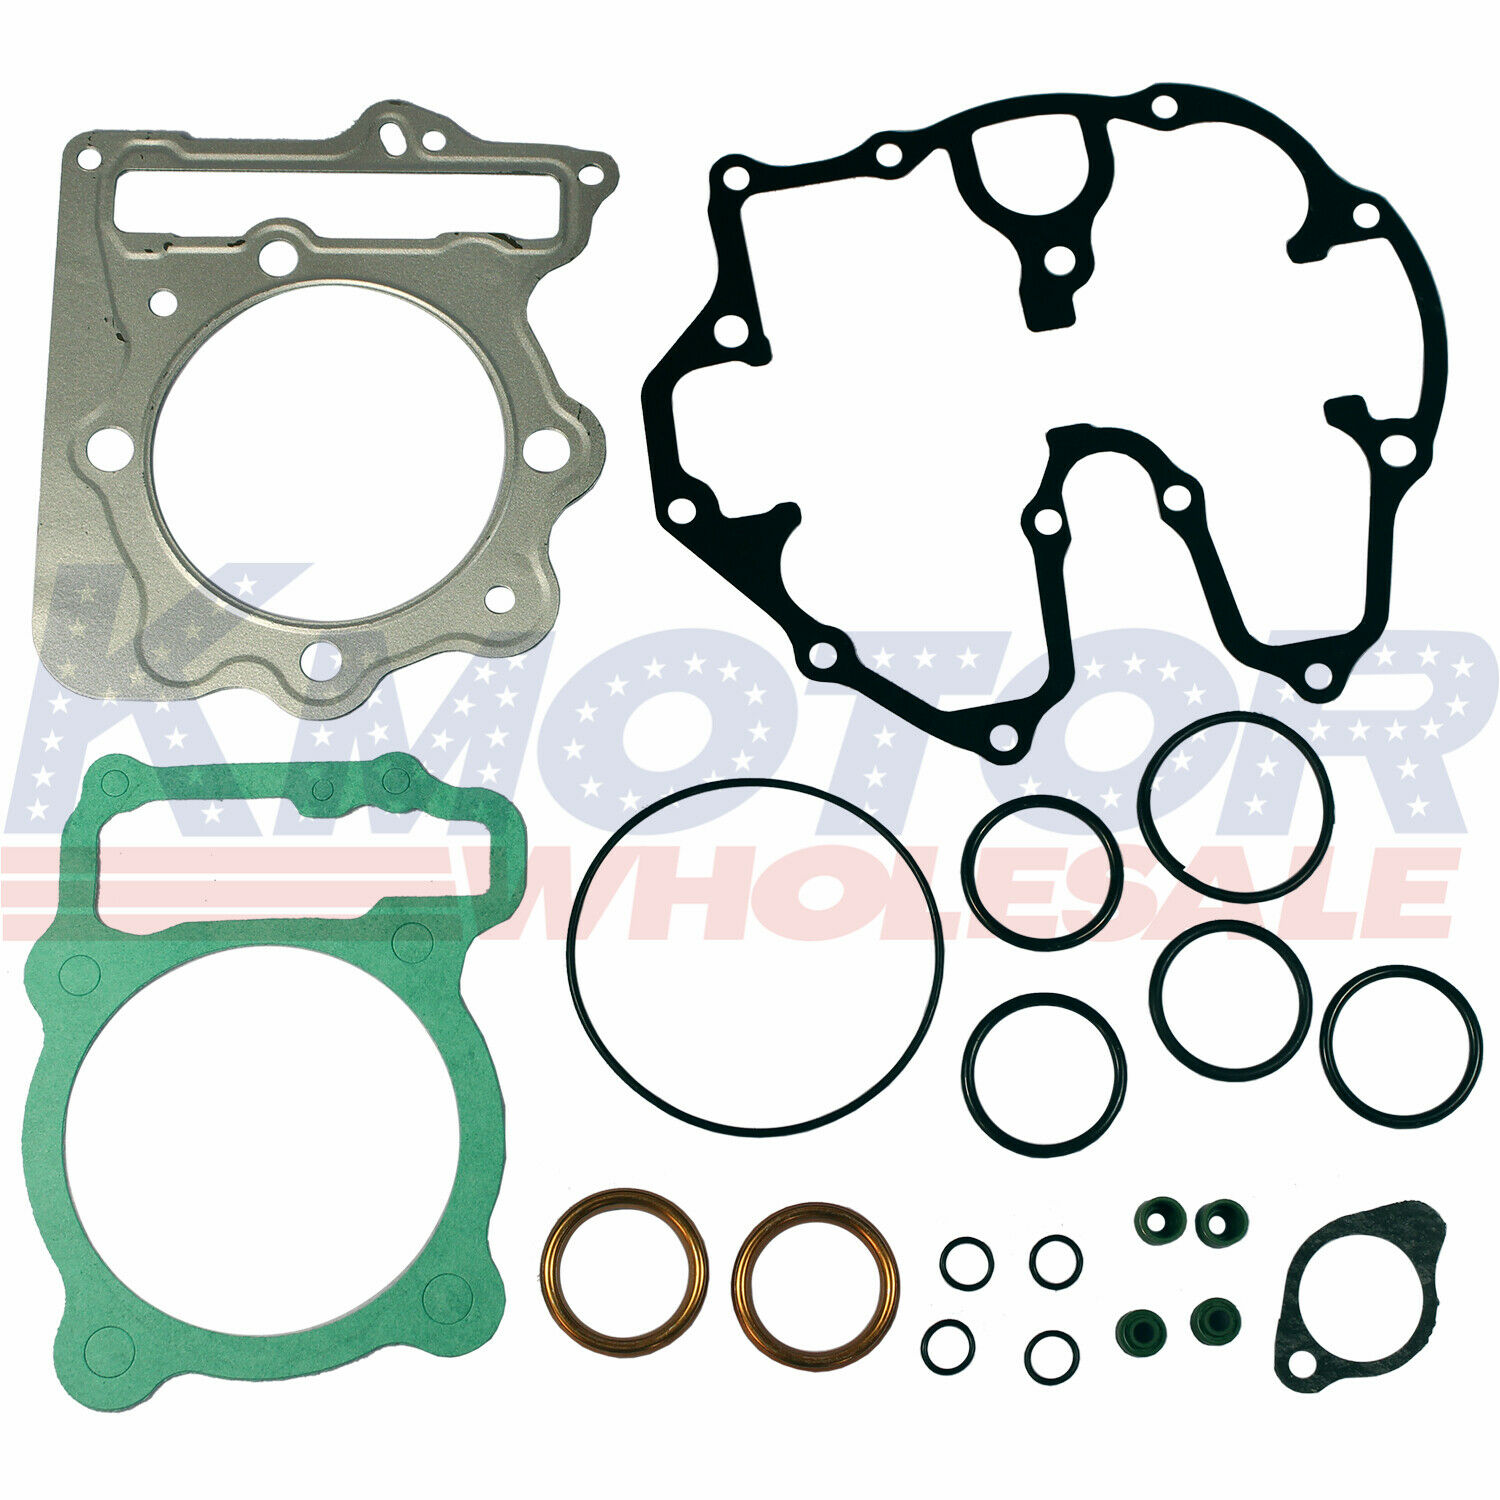 Top End Gasket Kit Set For 1999-2014 Honda Sportrax 400 TRX400EX Honda TRX400X